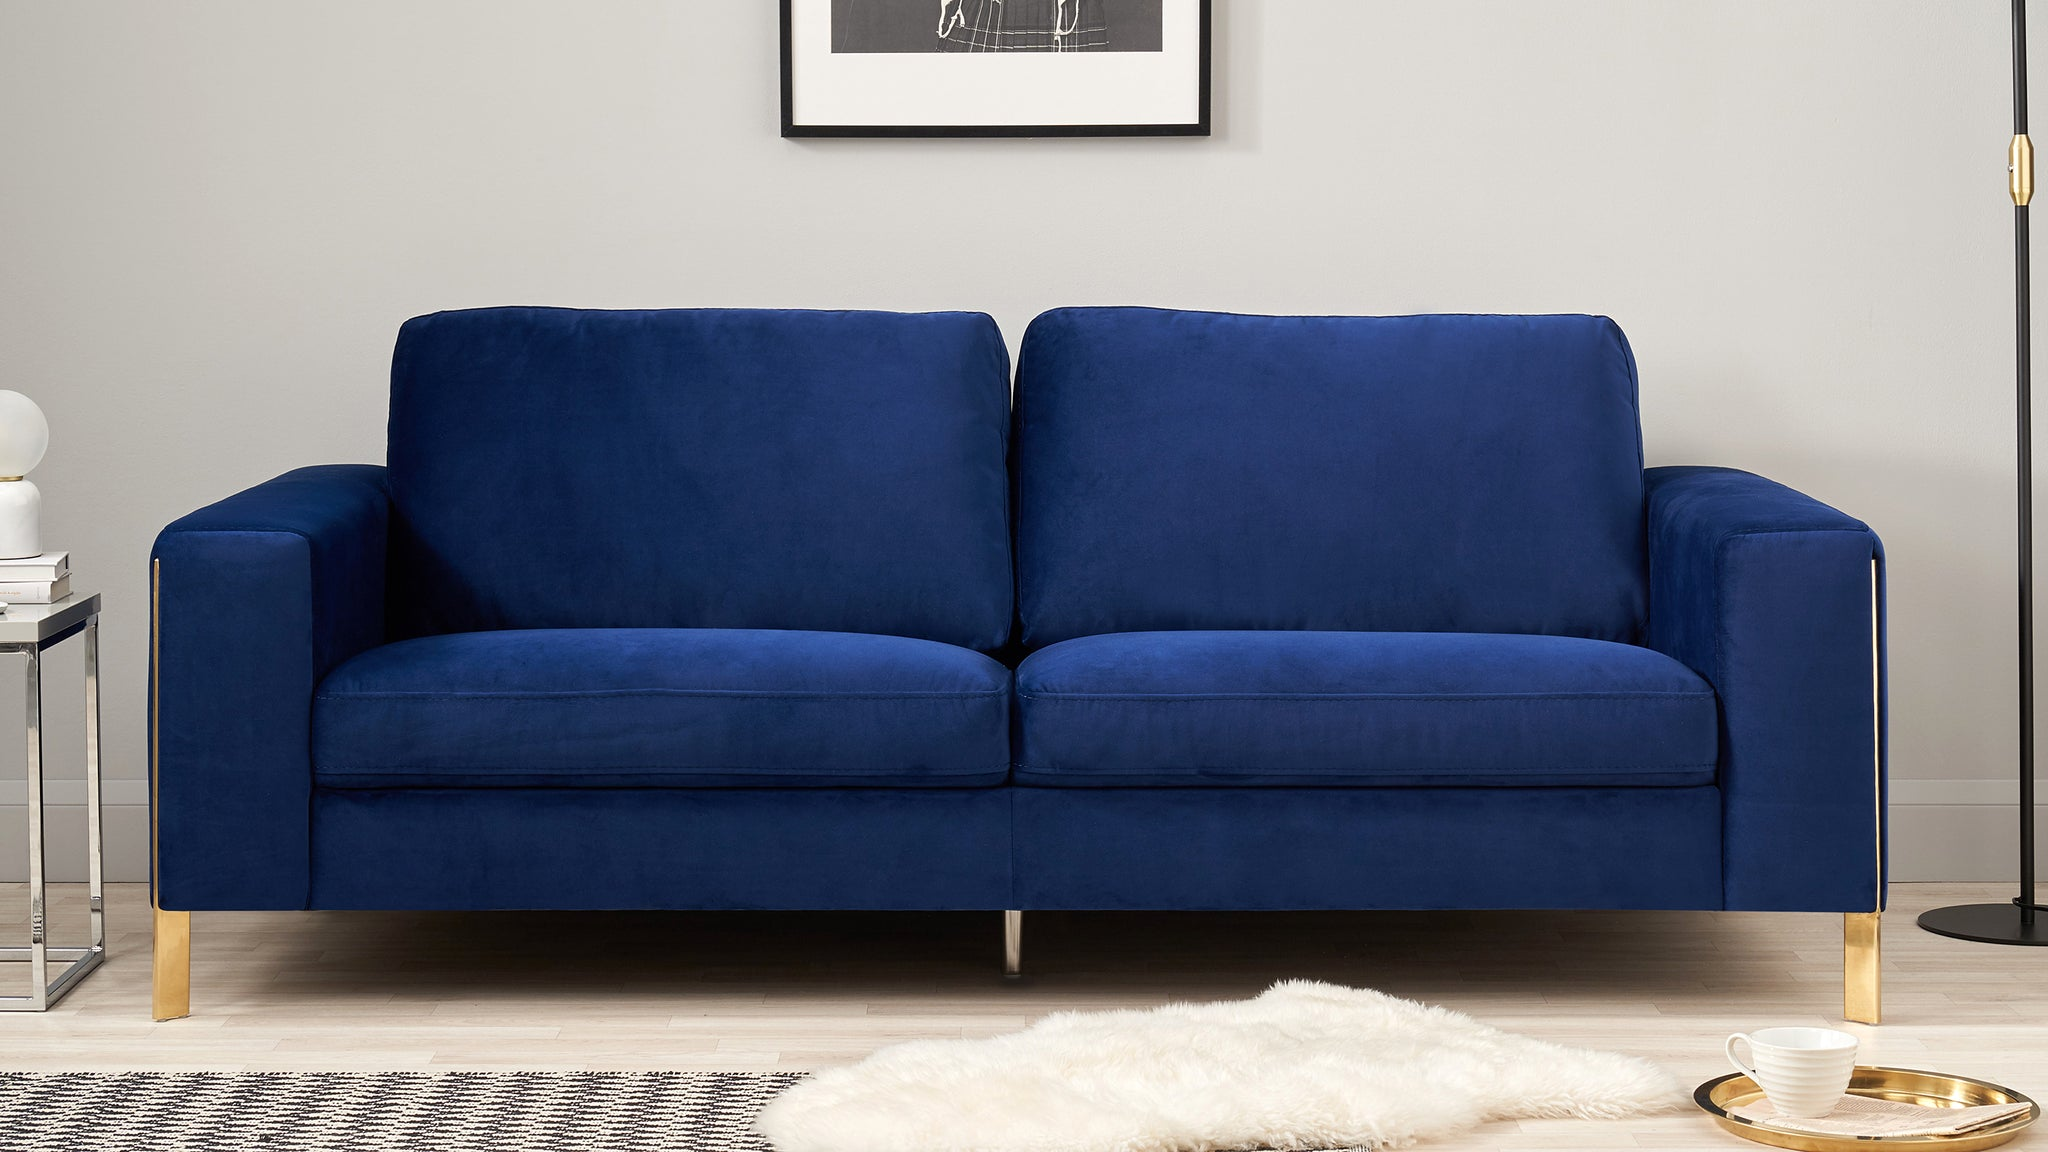 Effie Dark Blue Velvet With Polished Brass 3 Seater Sofa